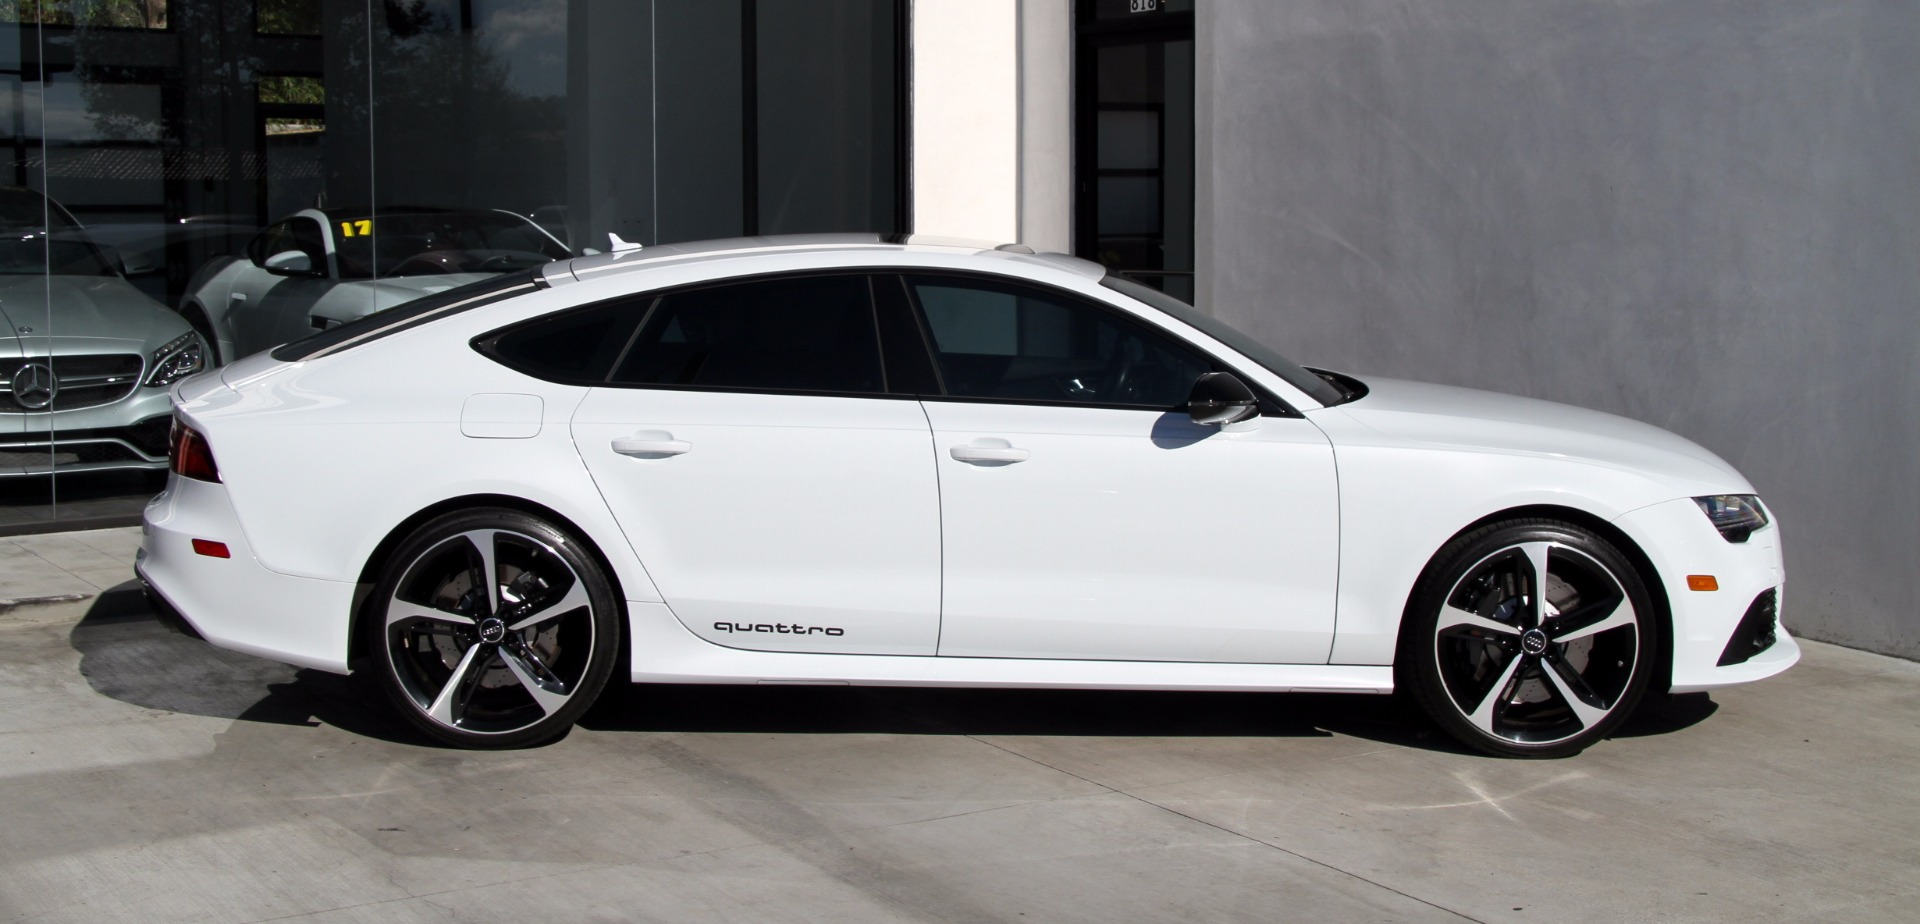 2016 Audi Rs 7 4 0t Quattro Prestige Stock 6032 For Sale